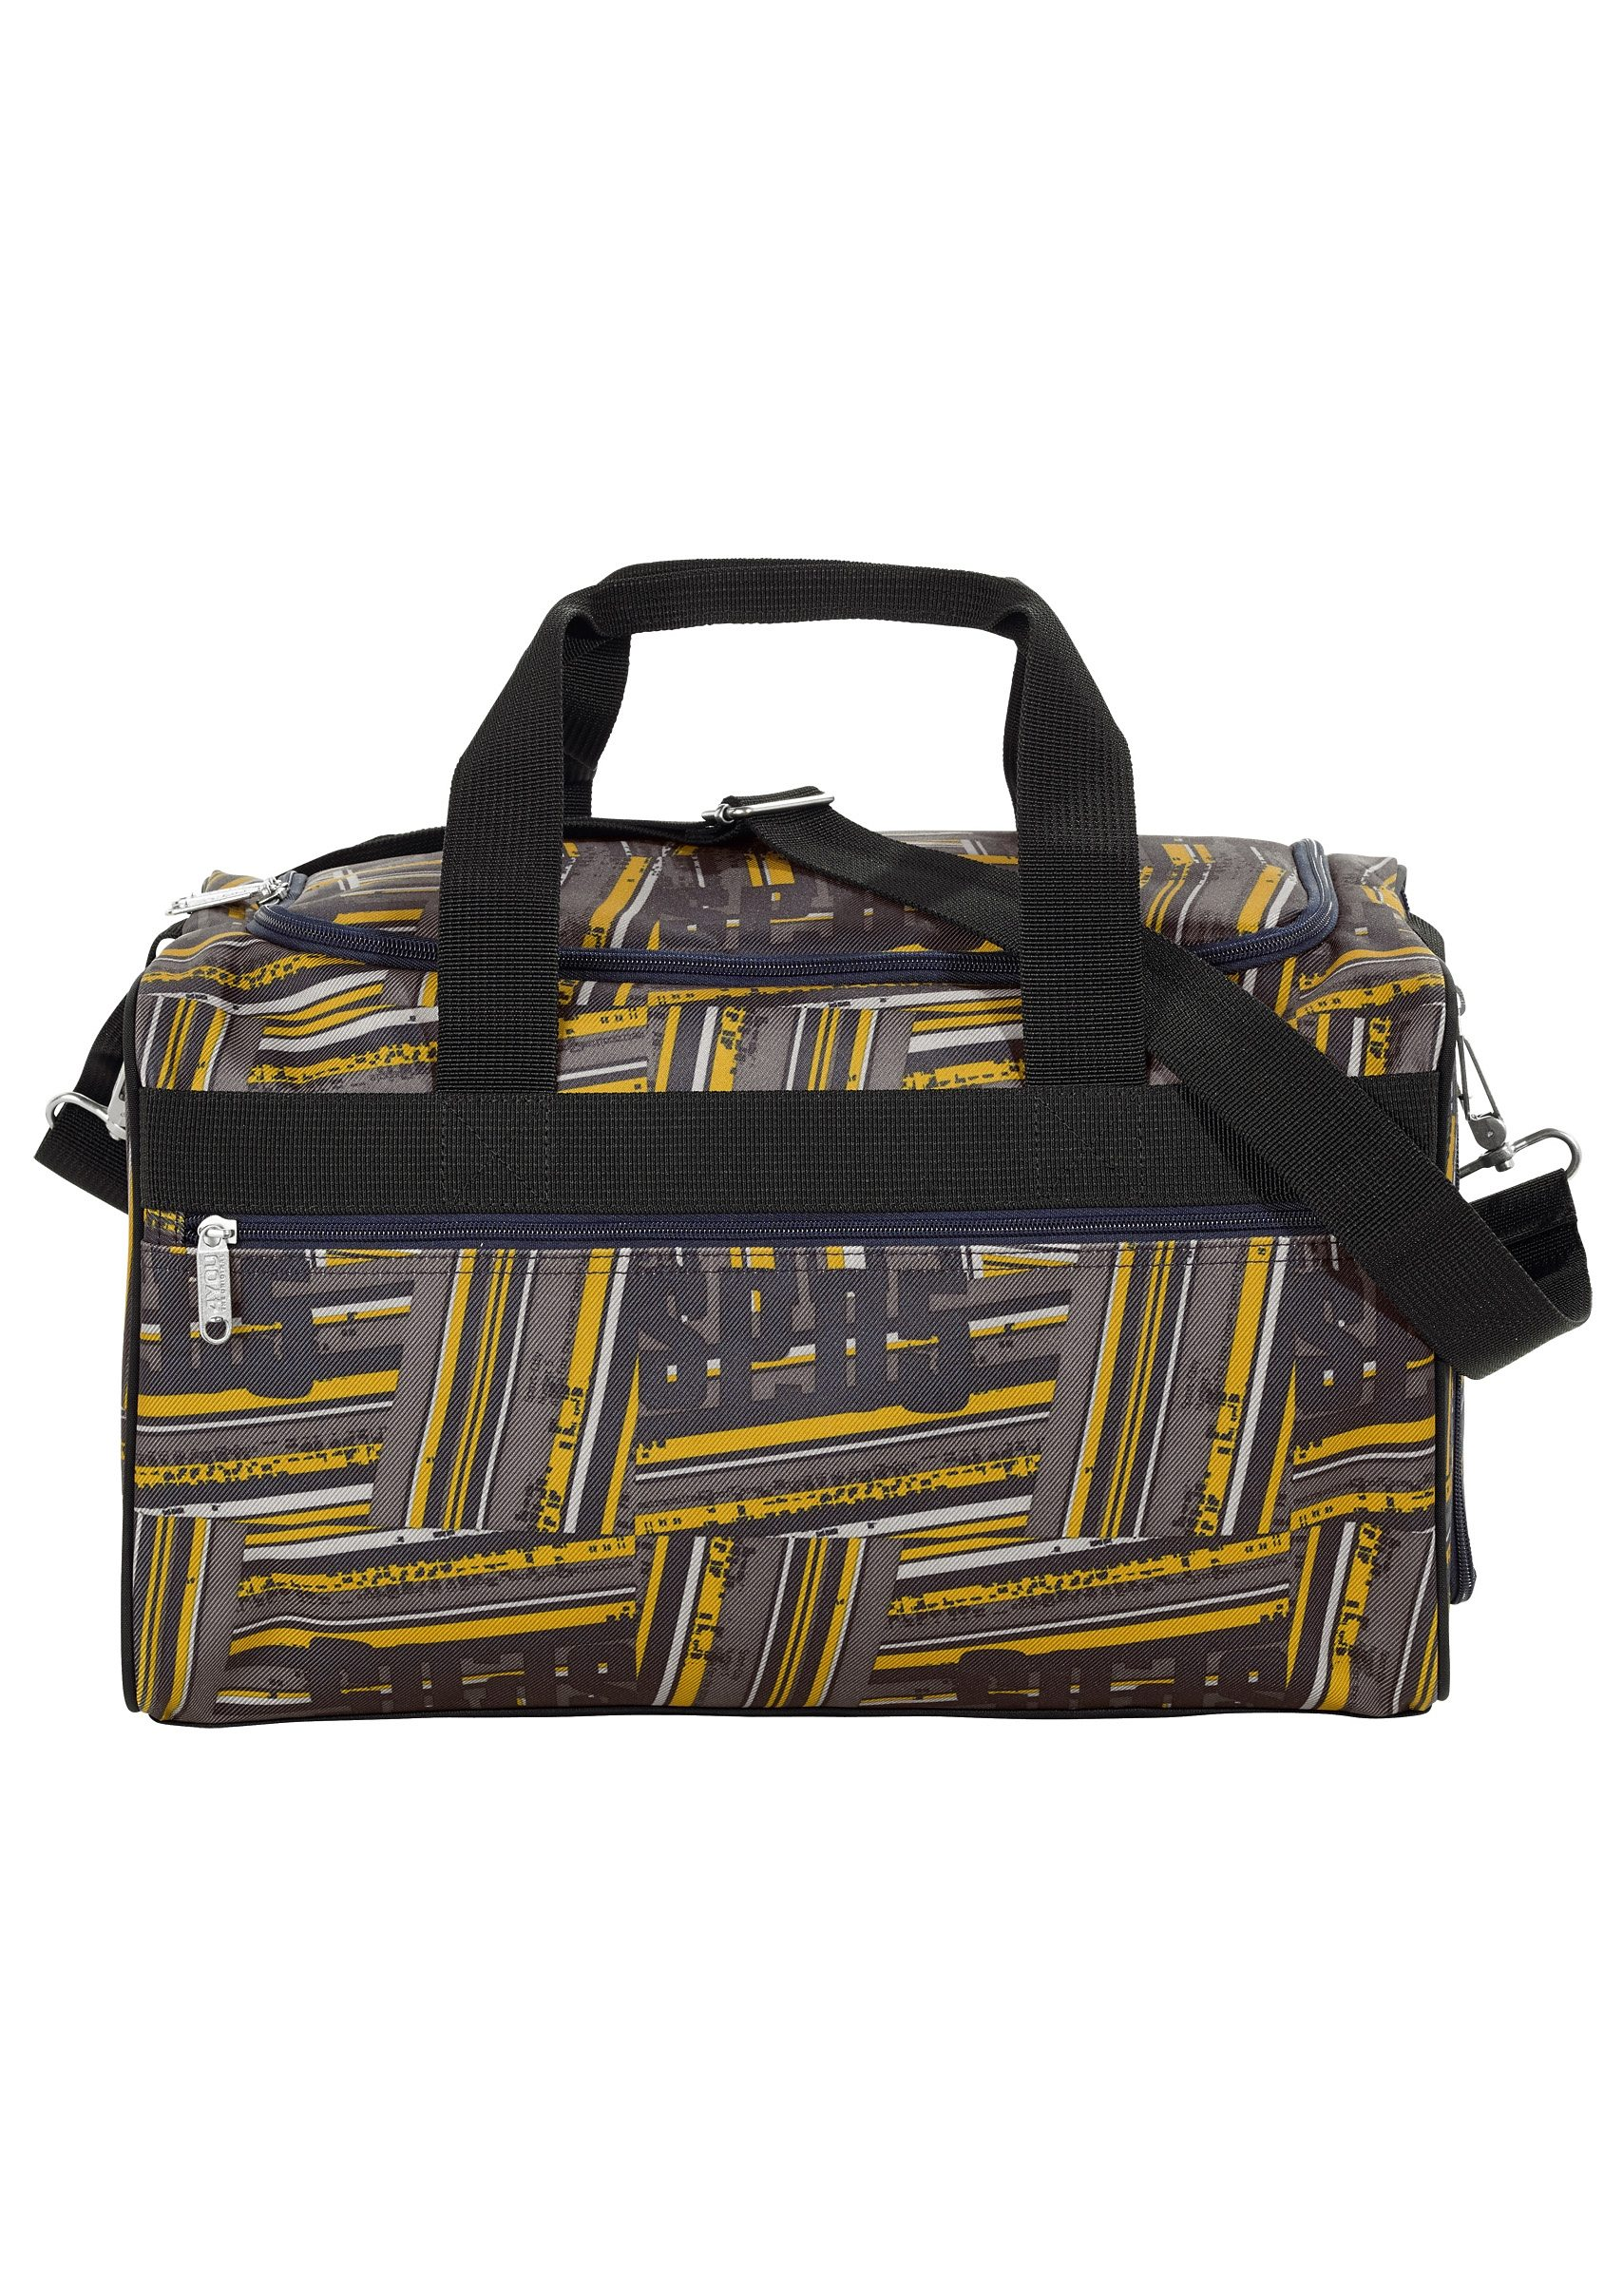 4YOU Sporttasche, Stripes, »Sportbag M«